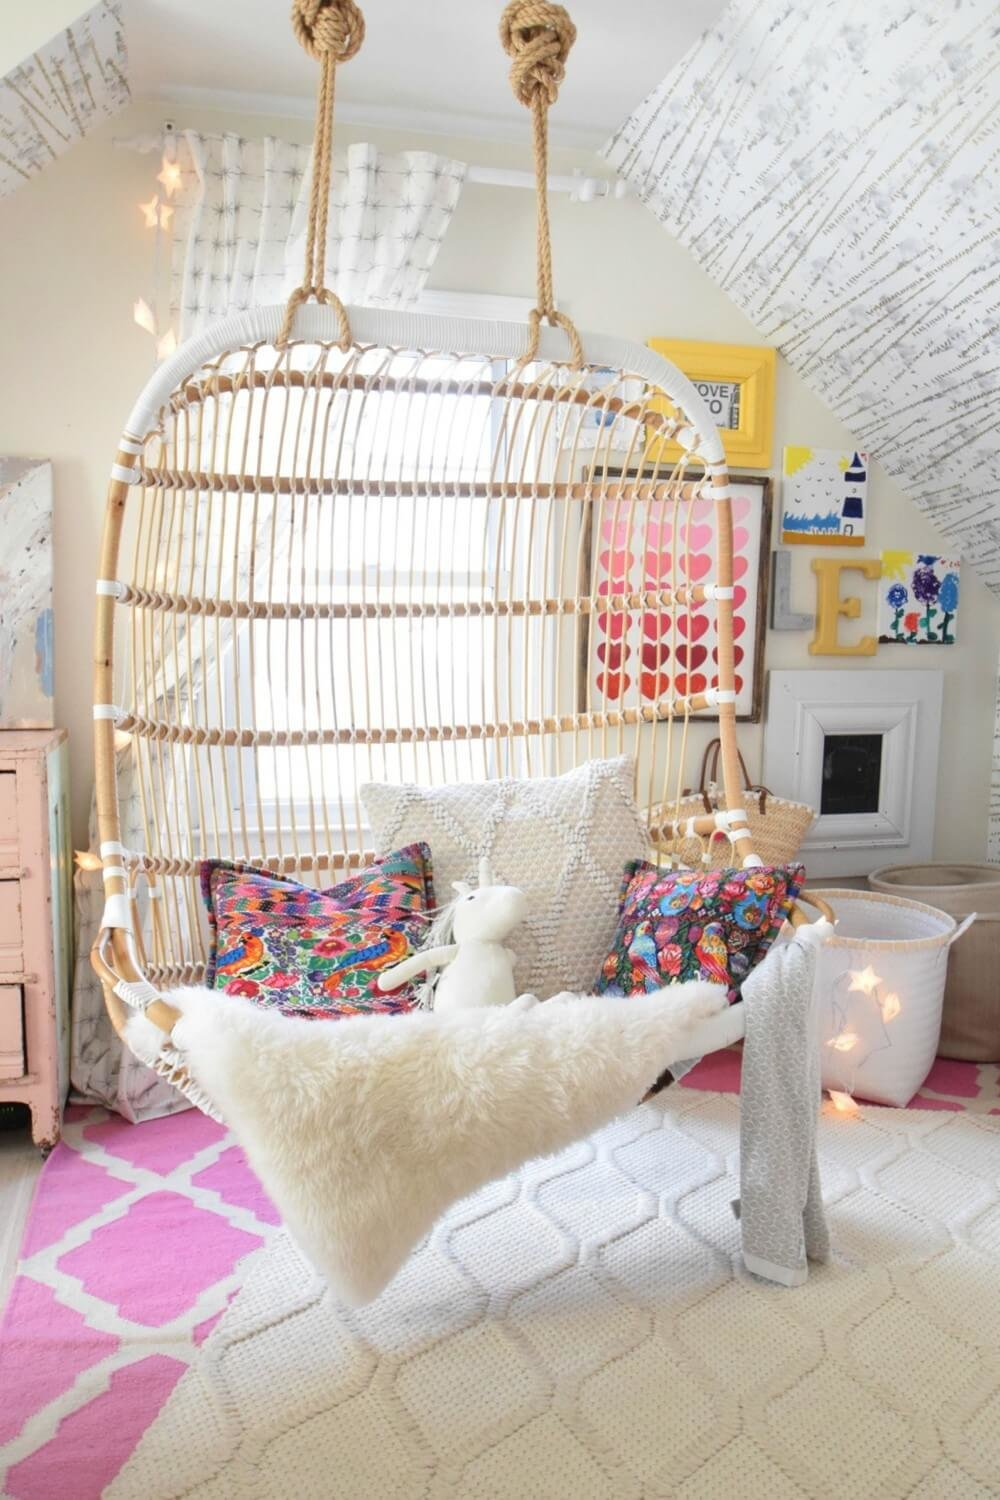 65 cute teenage girl bedroom ideas that will blow your mind - Teenage girl bedroom decorations ...